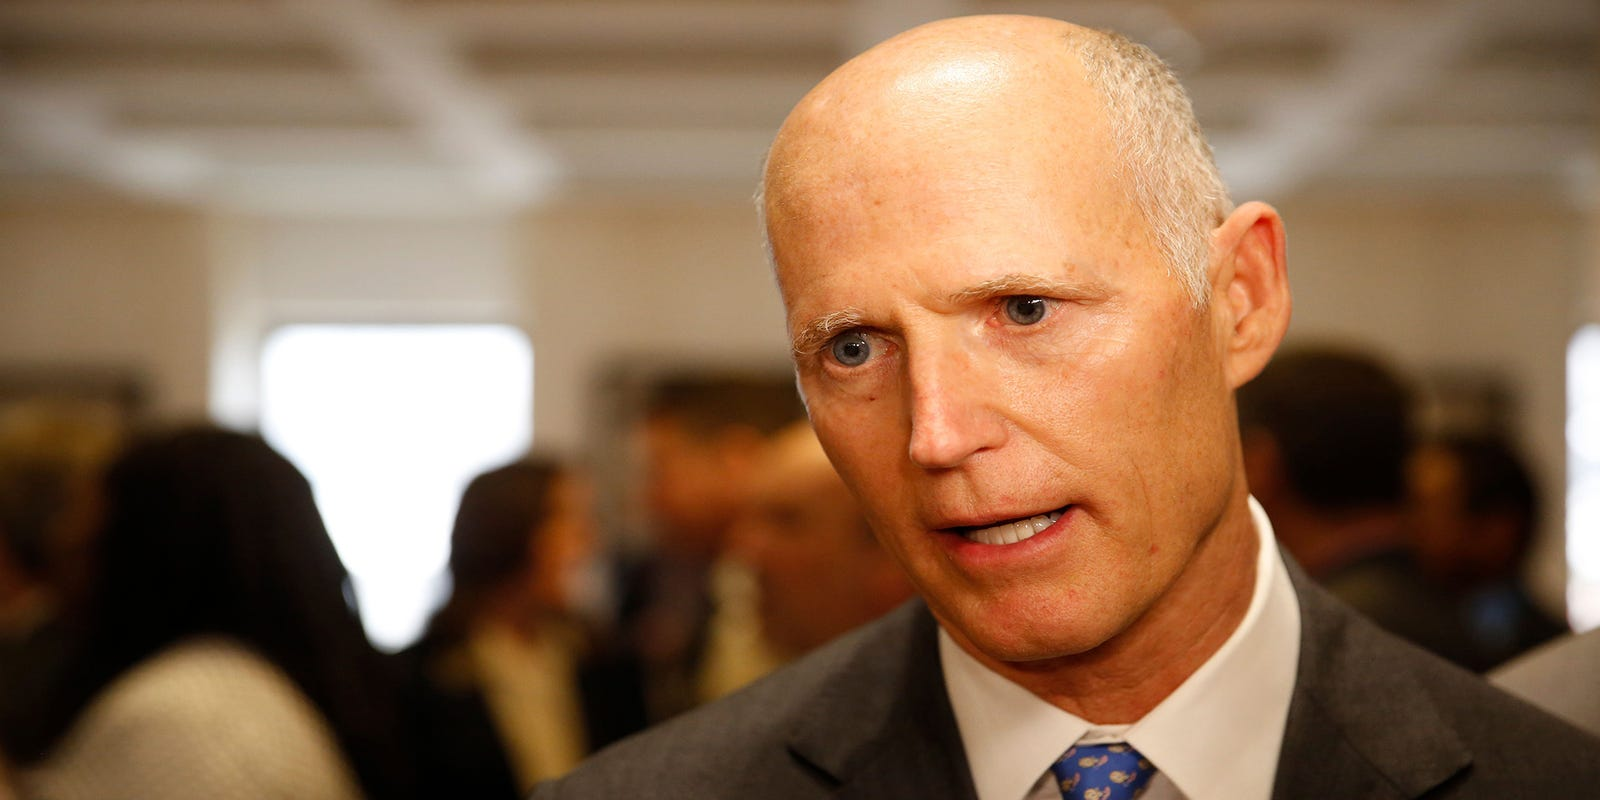 Sen. Rick Scott, who objected to Pennsylvania vote count, says Biden 'absolutely' won fair and square